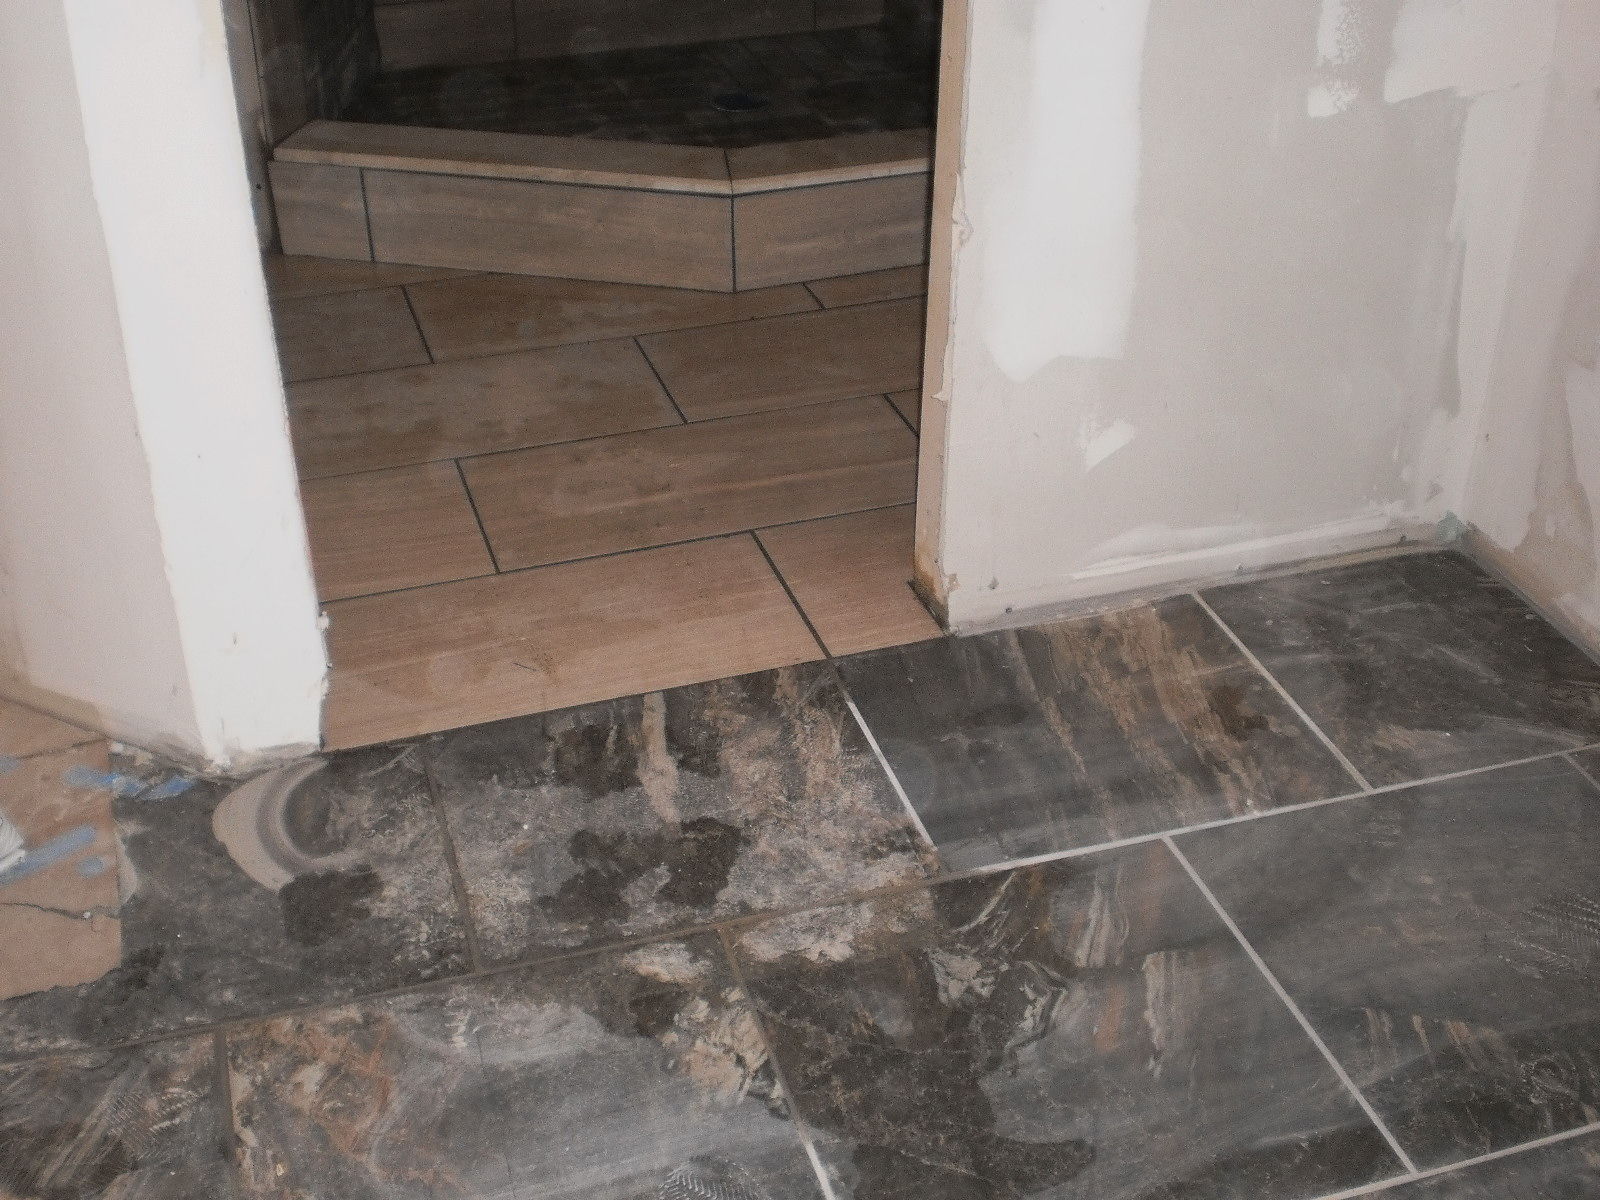 Surprising Basement Floor Tile Images Design Ideas Dievoon